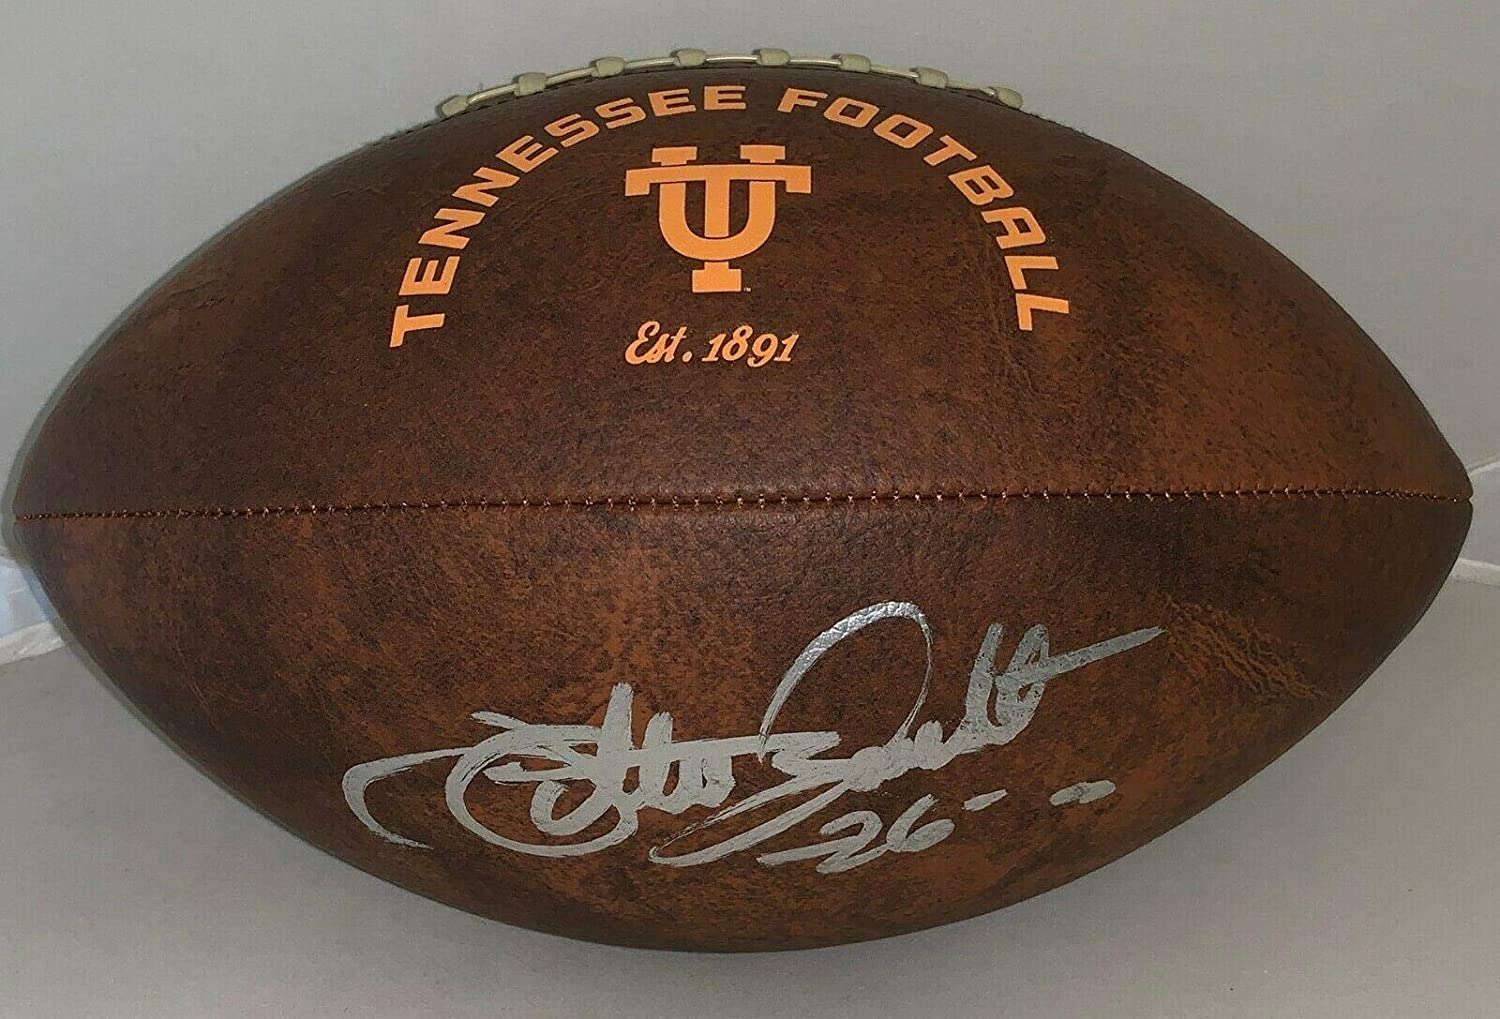 Willie Gault Signed Football - Tennessee Volunteers Full Size - Autographed College Footballs